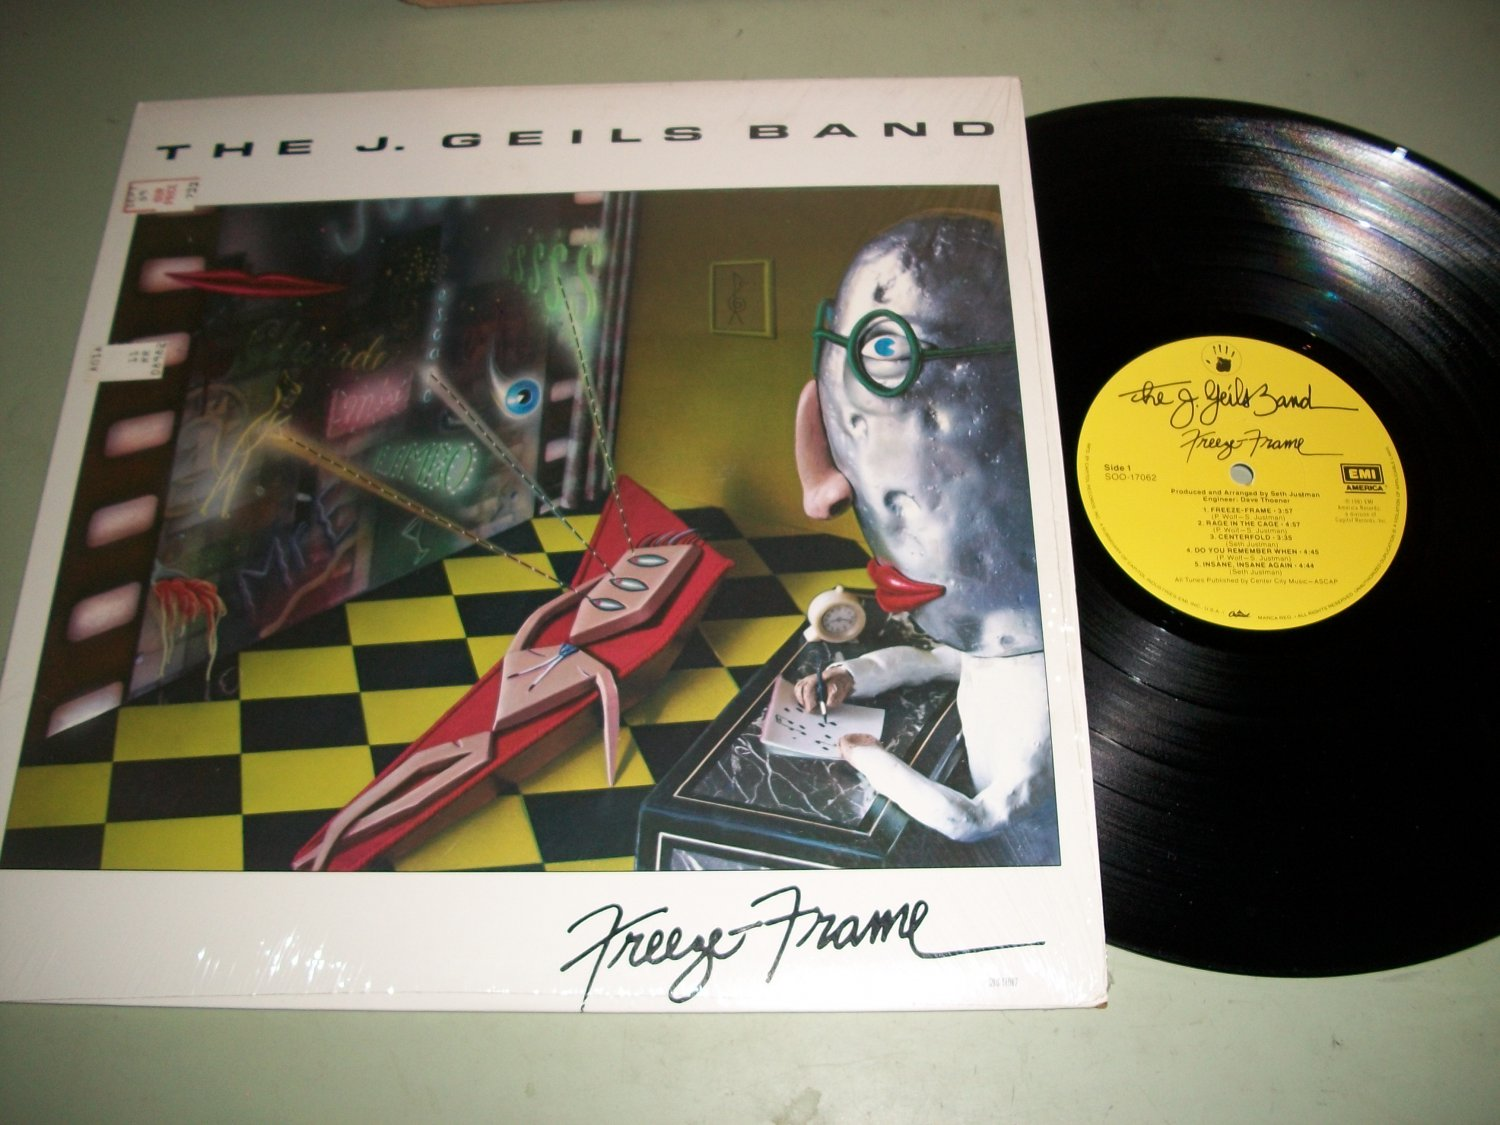 The J. Geils Band - Freeze Frame - EMI 17062 - Art Jacket - Rock LP\'s